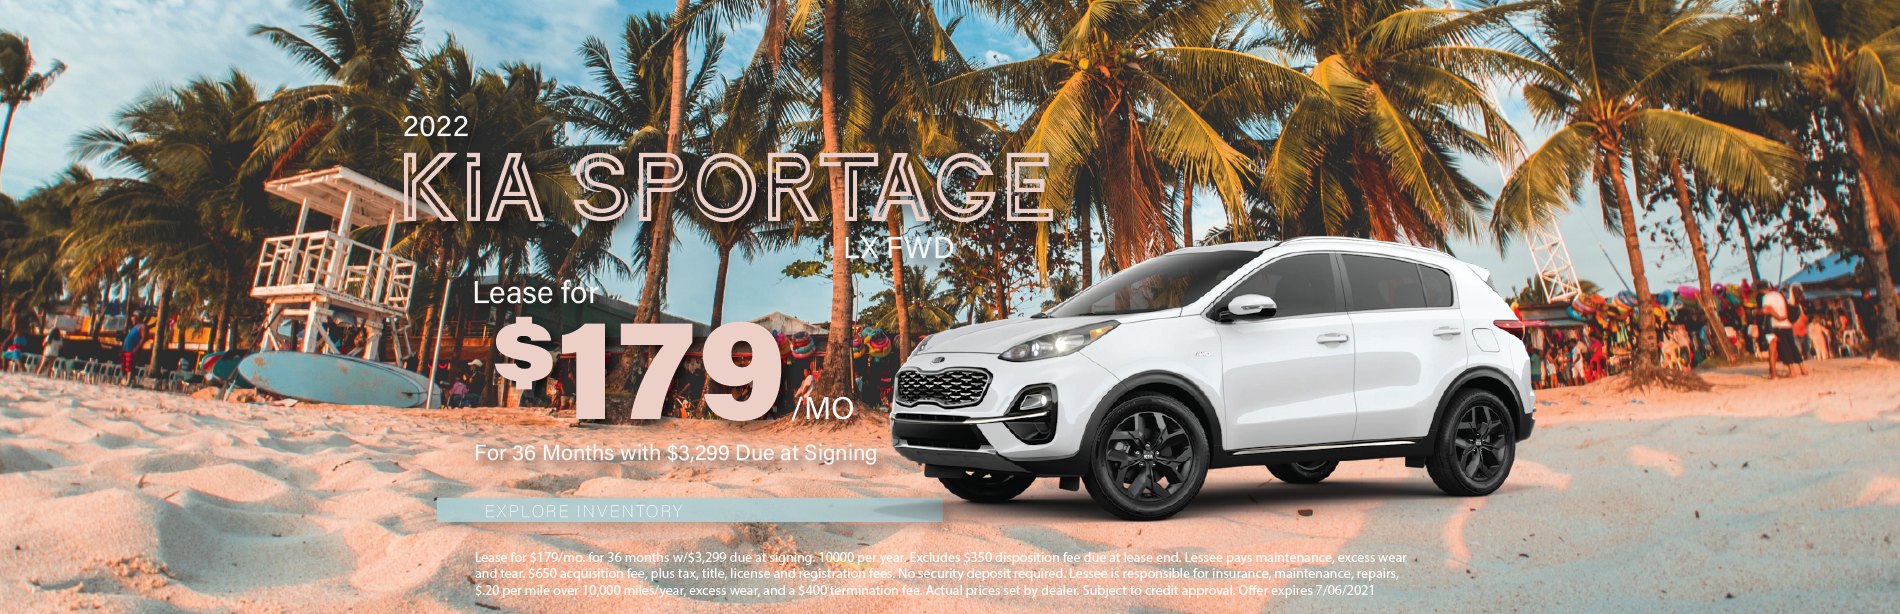 Lafontaine Kia Sportage – May